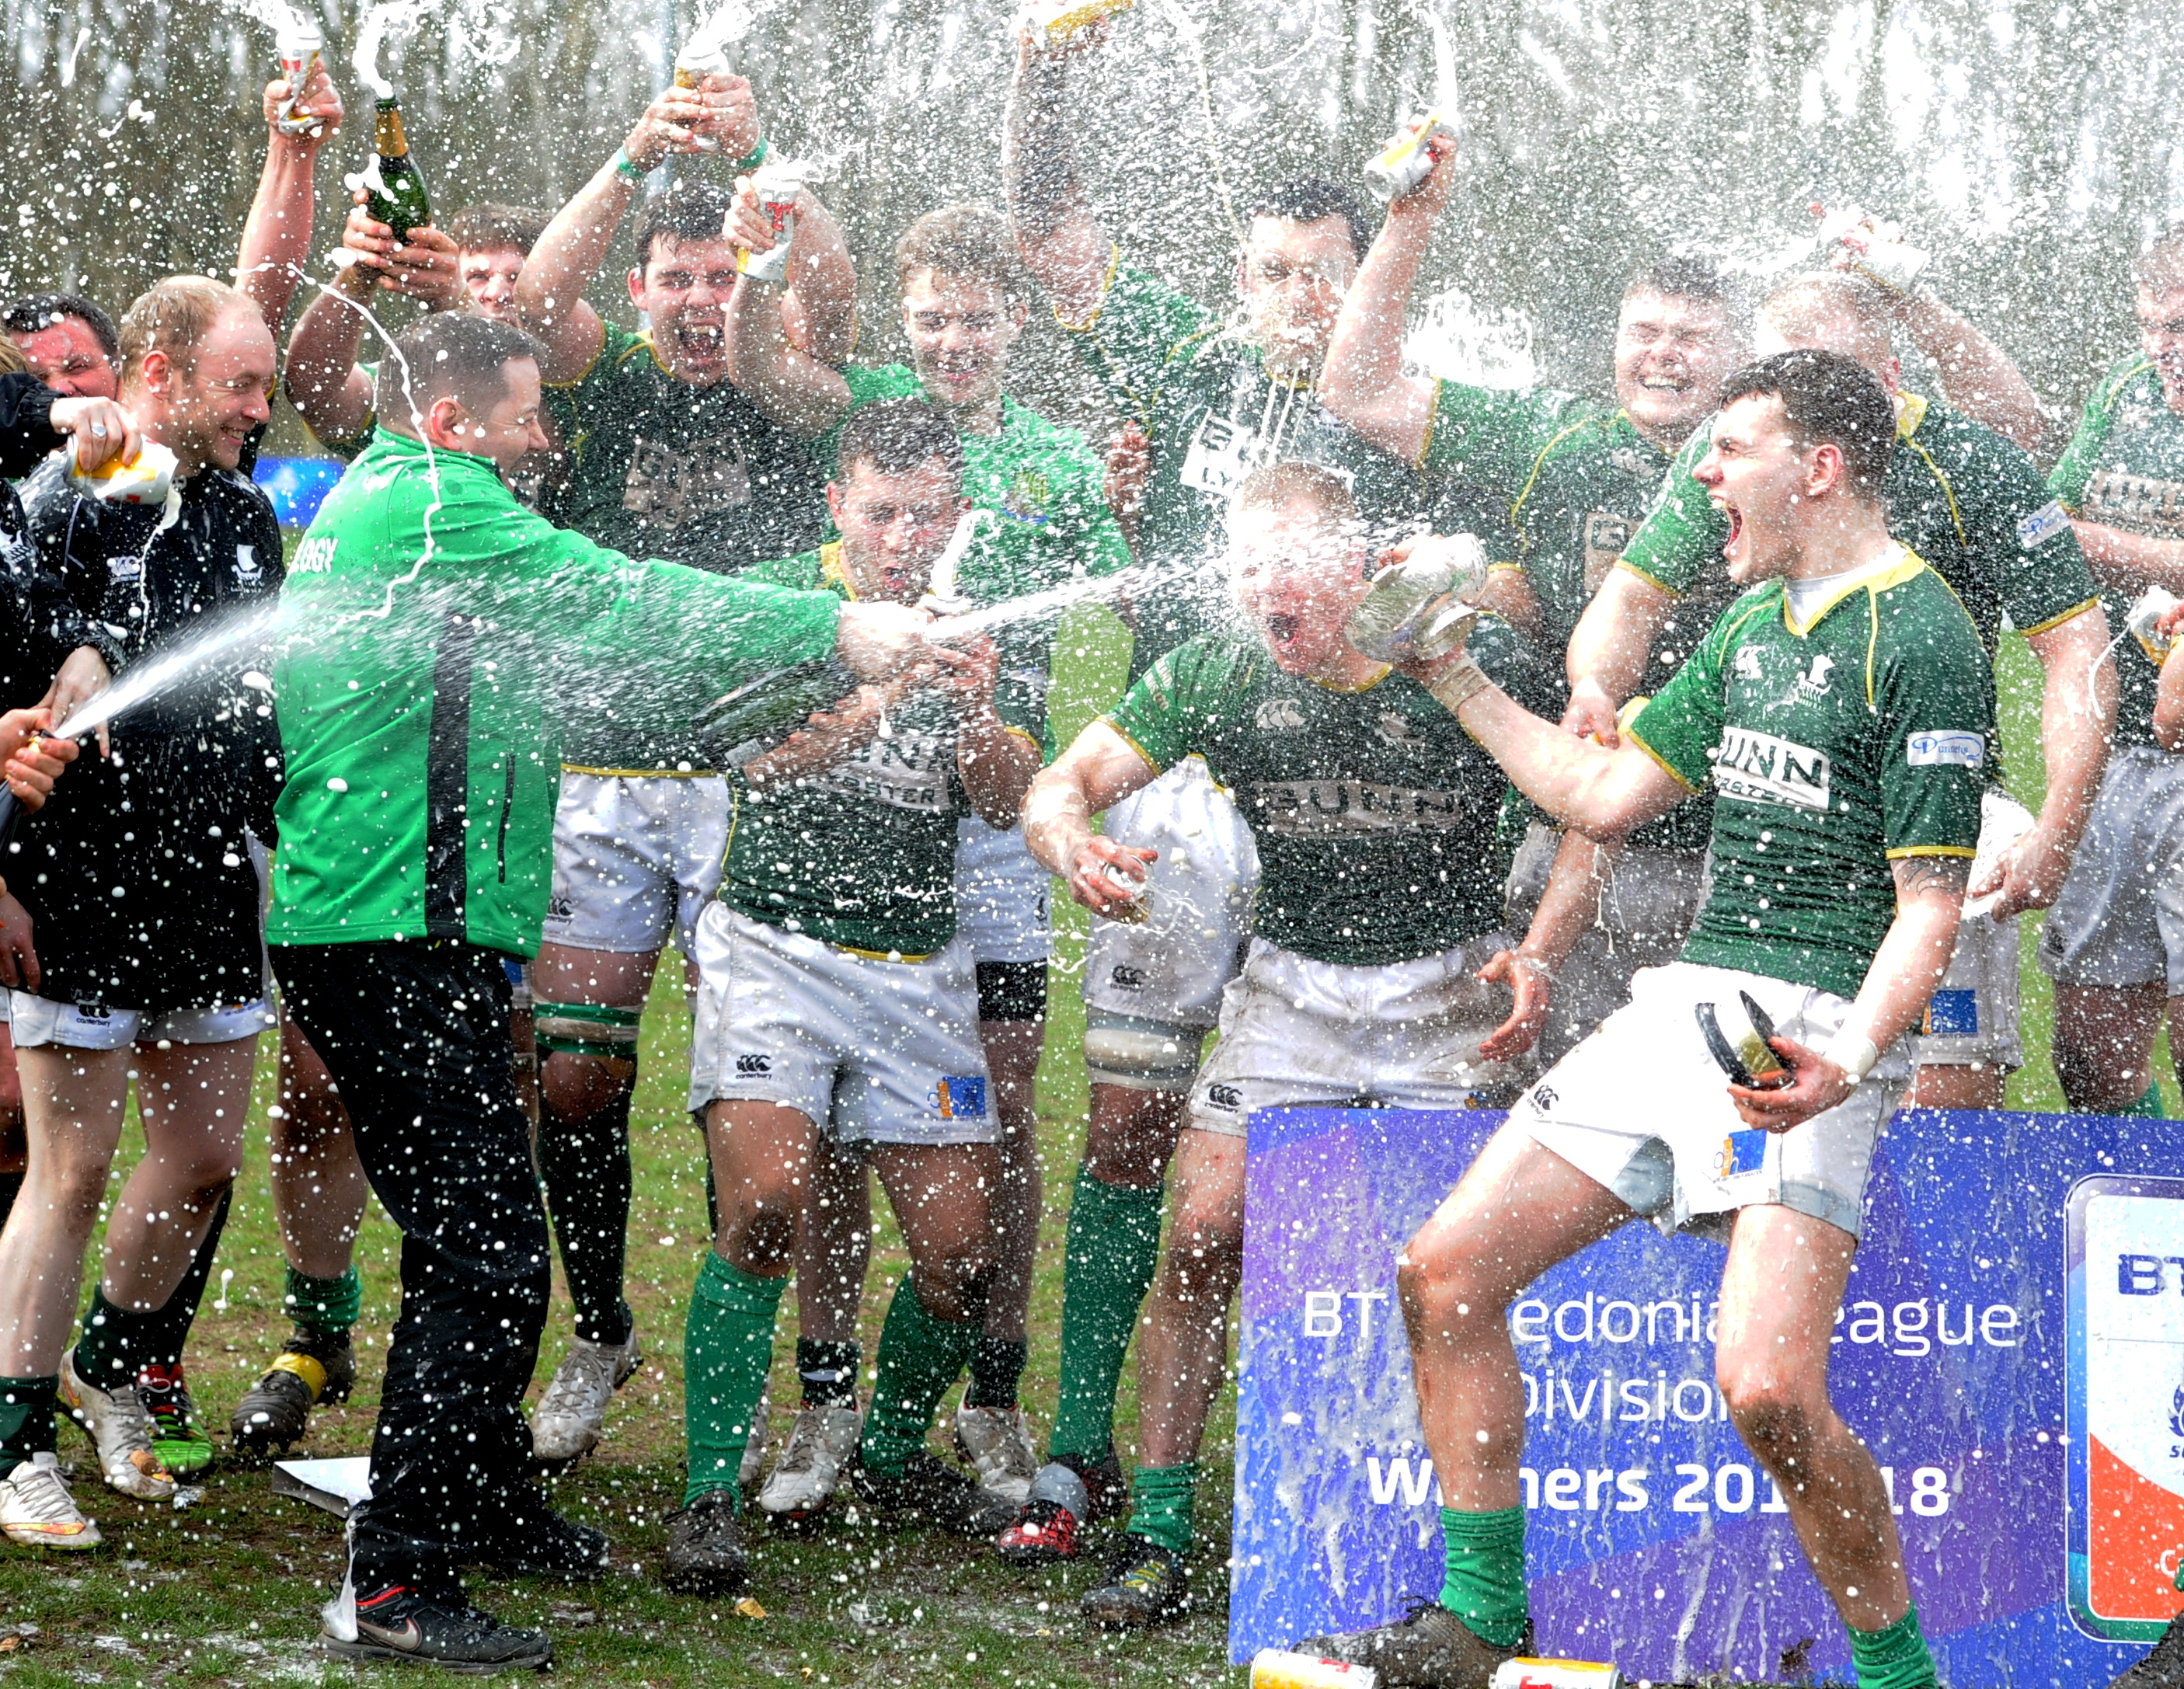 Rugby Strathmore v. Caithness at Forfar. Caithiness Rufc won the league and they celebrate. Picture by COLIN RENNIE   April 14, 2018.